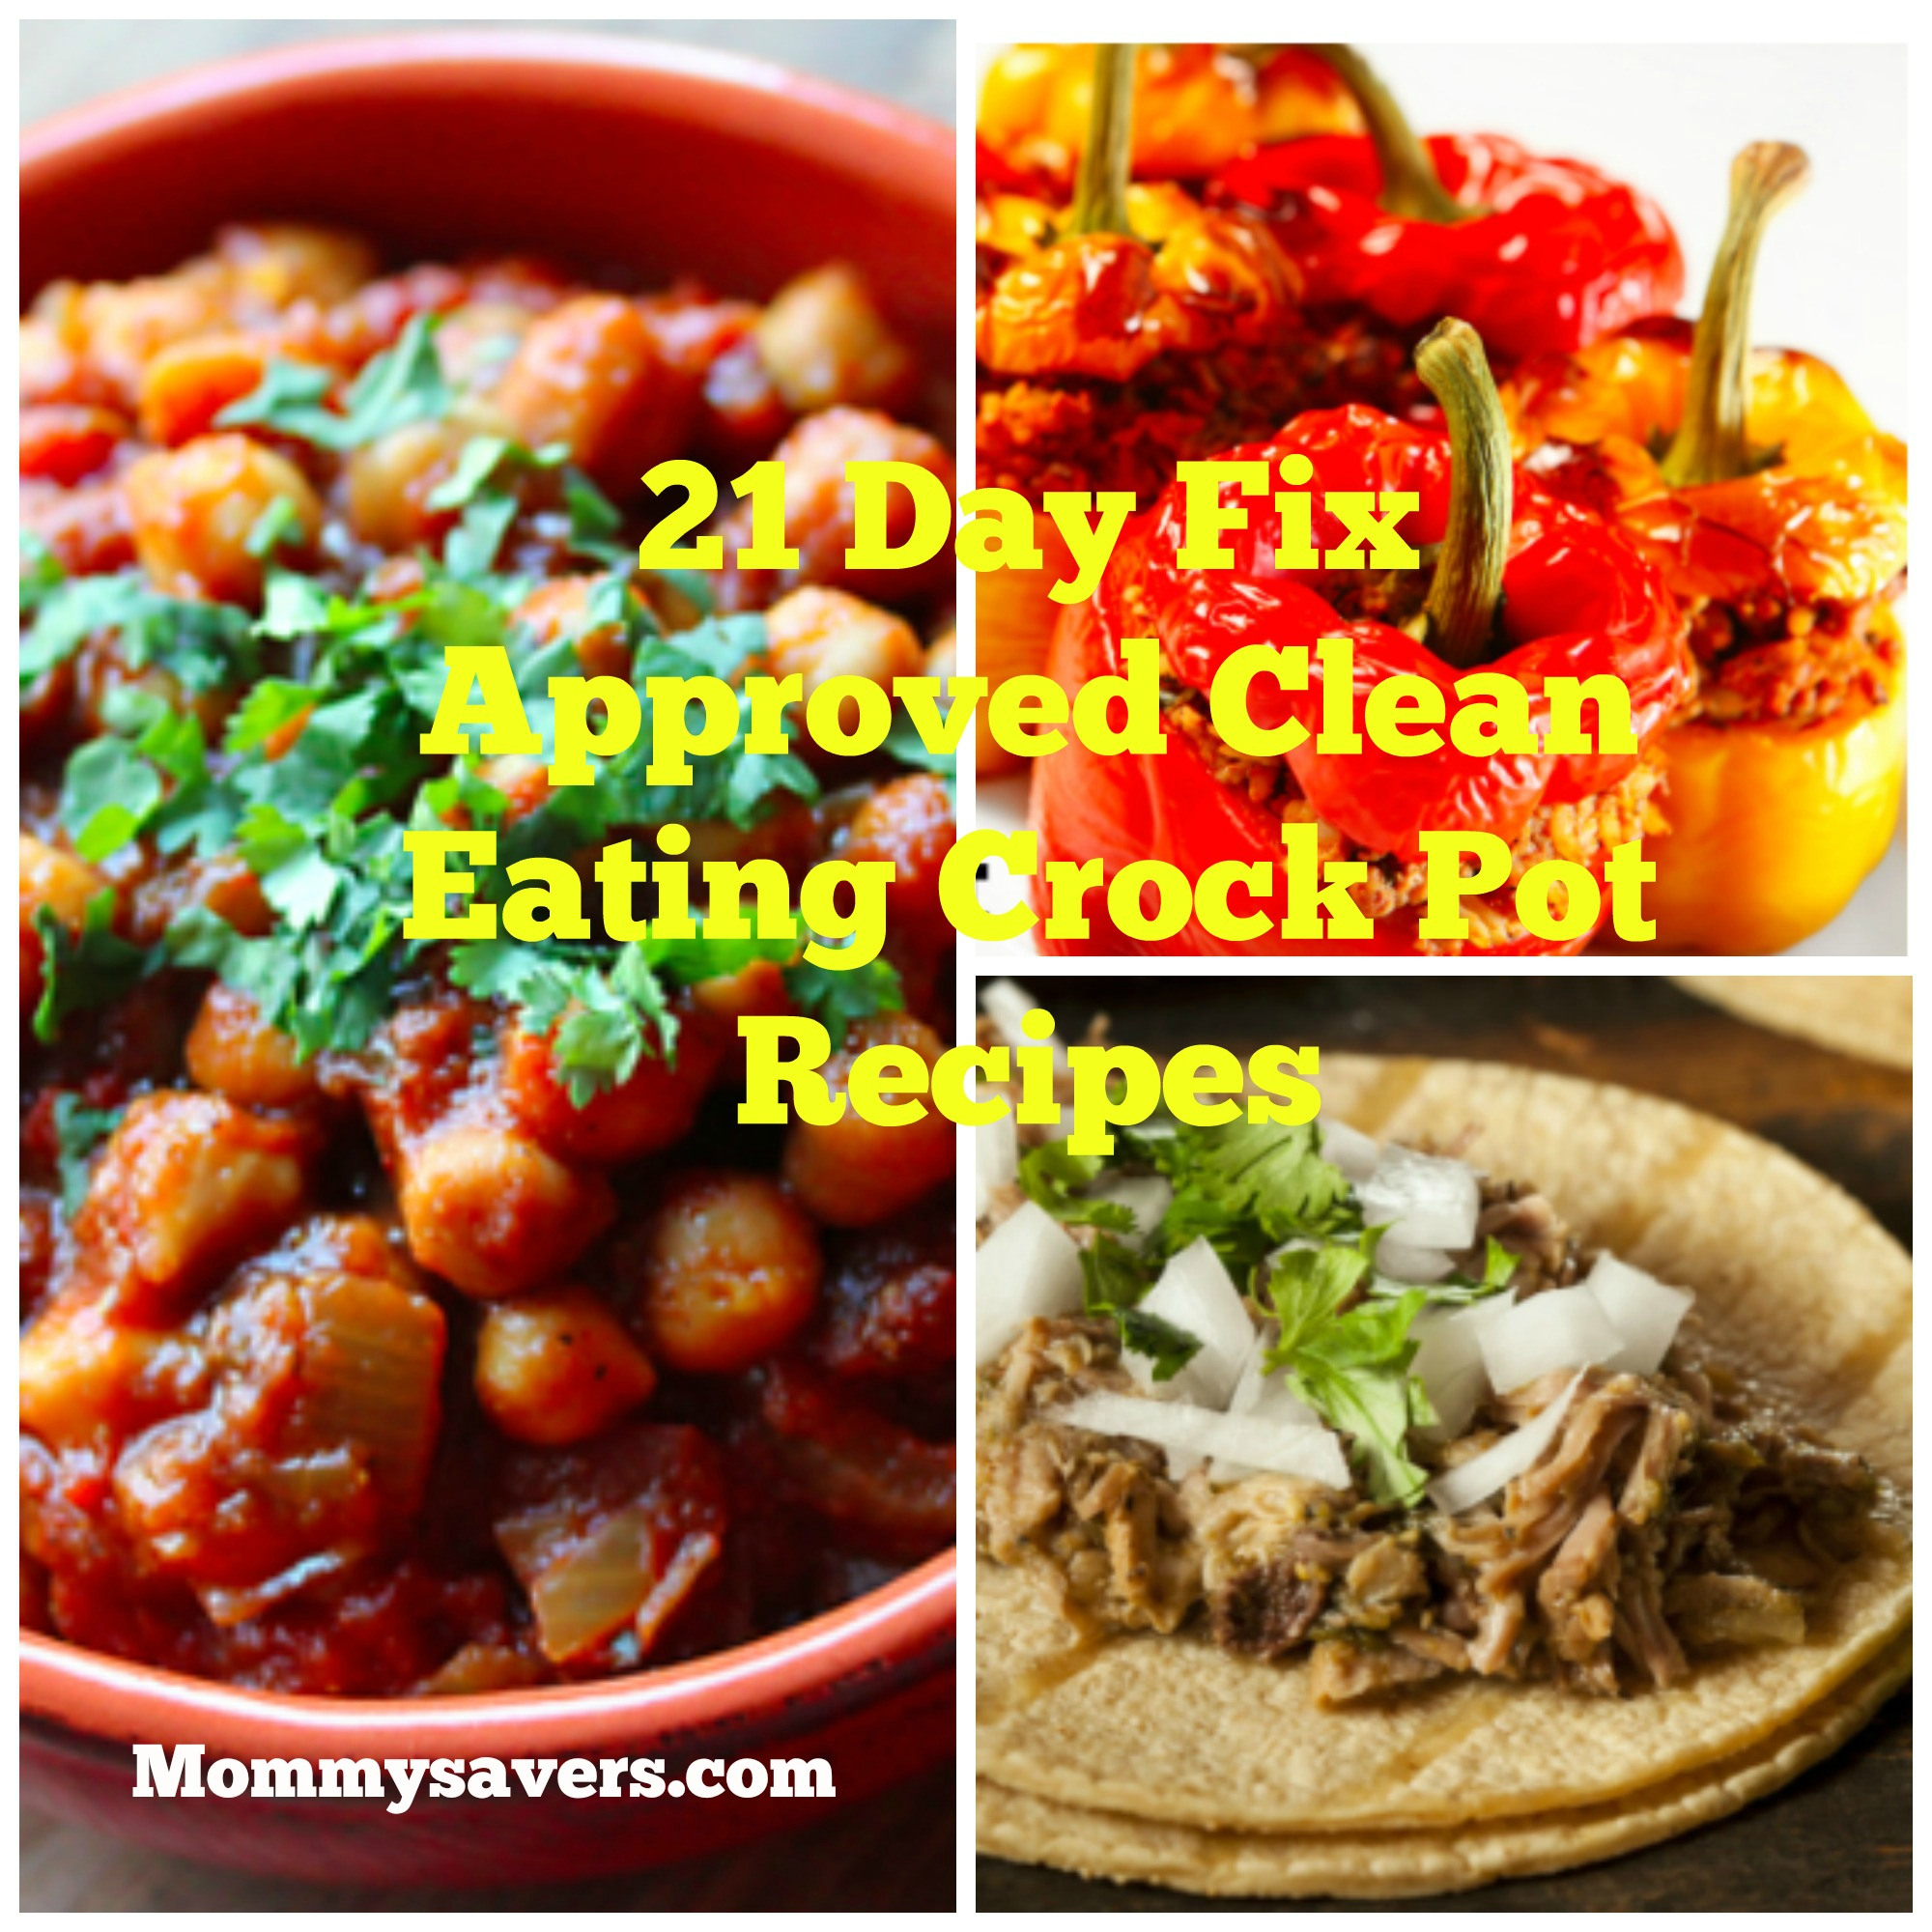 21 day fix approved clean eating crock pot recipes mommysavers